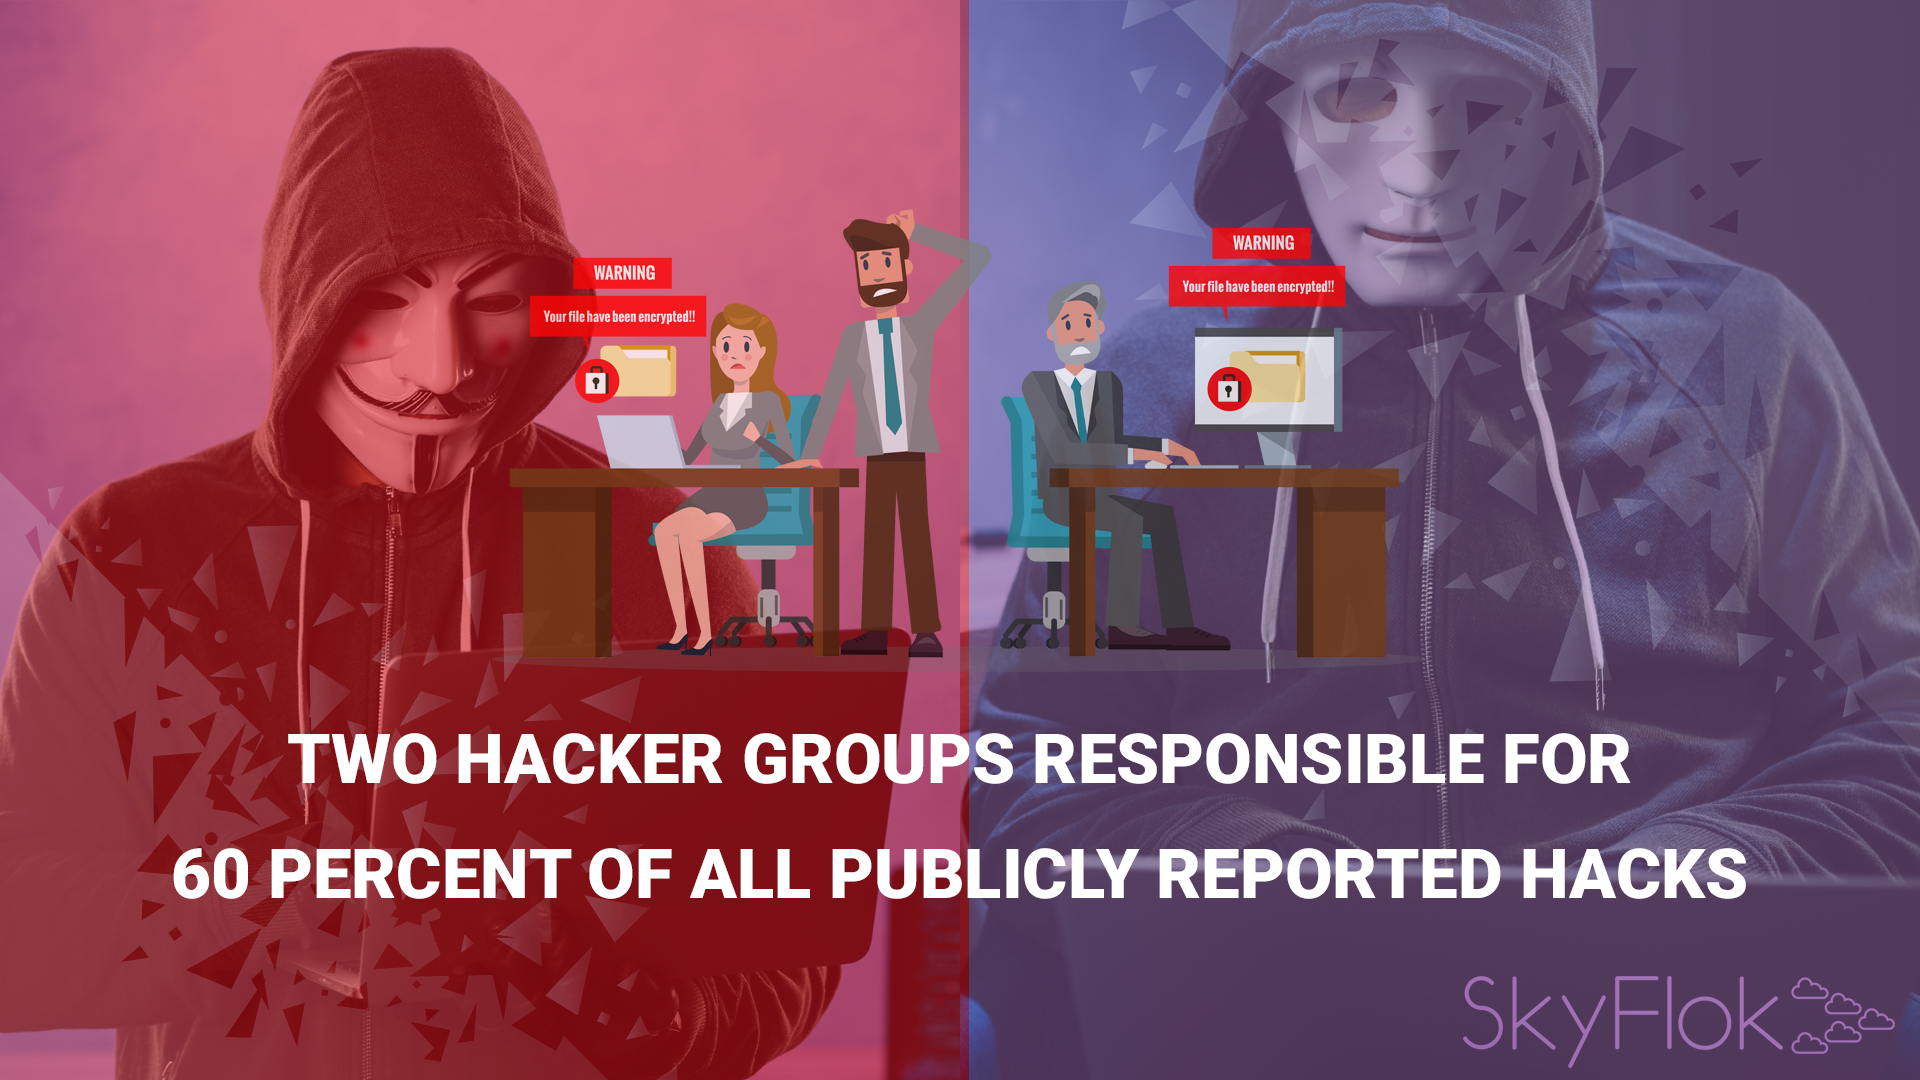 Two hacker groups responsible for 60 percent of all publicly reported hacks